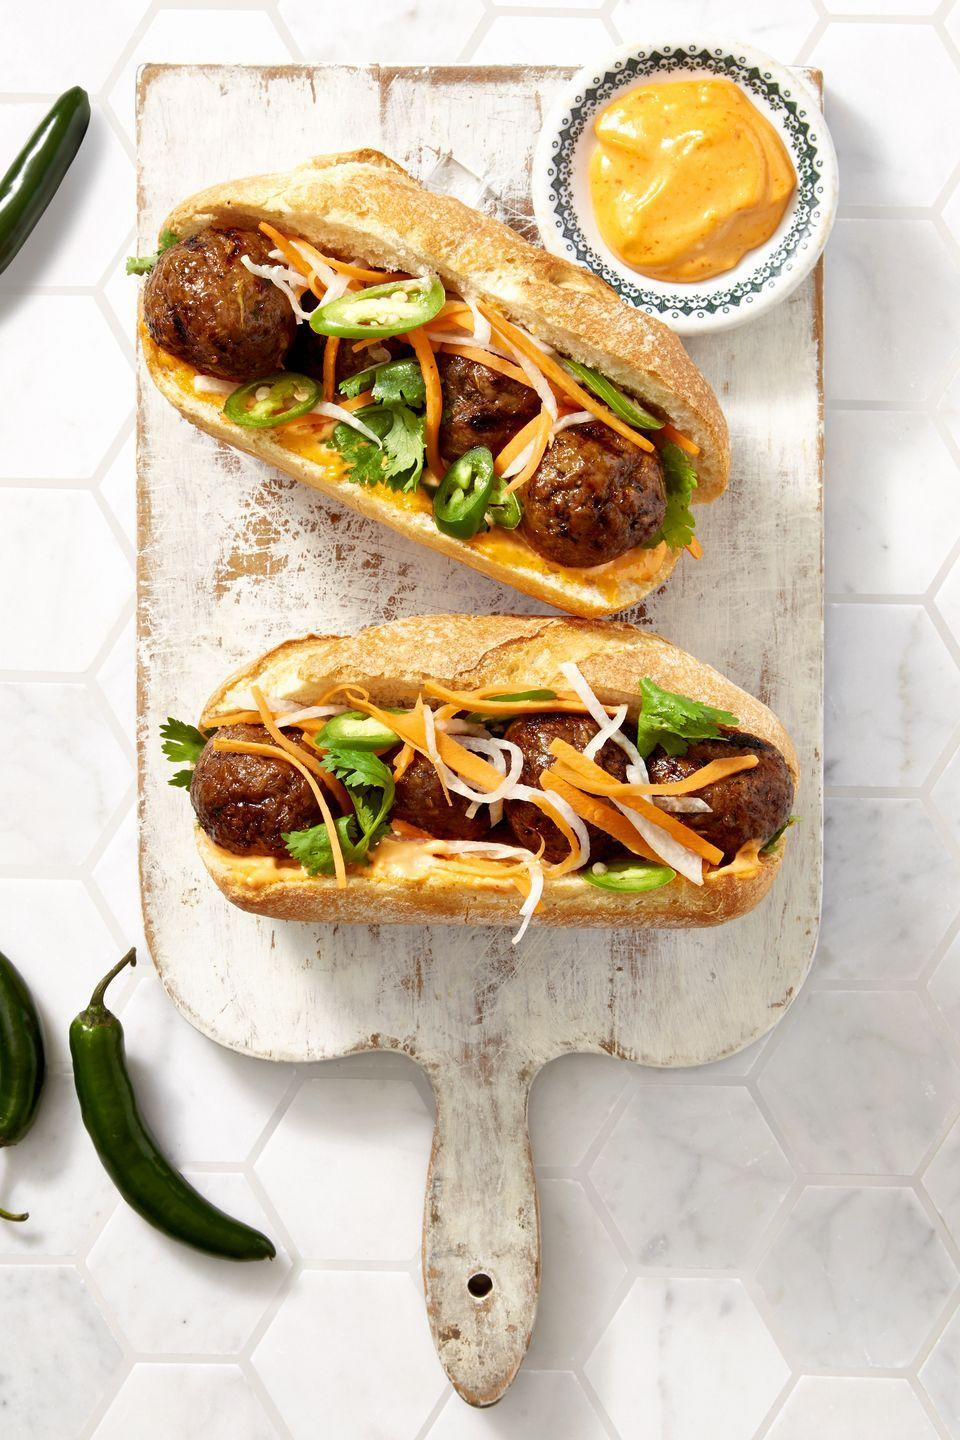 """<p>Devote some time on Sunday to cooking up a big batch of these Asian meatballs. Then, throw 'em in sub rolls for lunch Monday to Friday.</p><p><a href=""""https://www.goodhousekeeping.com/food-recipes/a39934/sriracha-meatball-hoagies-recipe/"""" rel=""""nofollow noopener"""" target=""""_blank"""" data-ylk=""""slk:Get the recipe for Sriracha Meatball Hoagies »"""" class=""""link rapid-noclick-resp""""><em>Get the recipe for Sriracha Meatball Hoagies »</em></a> </p>"""